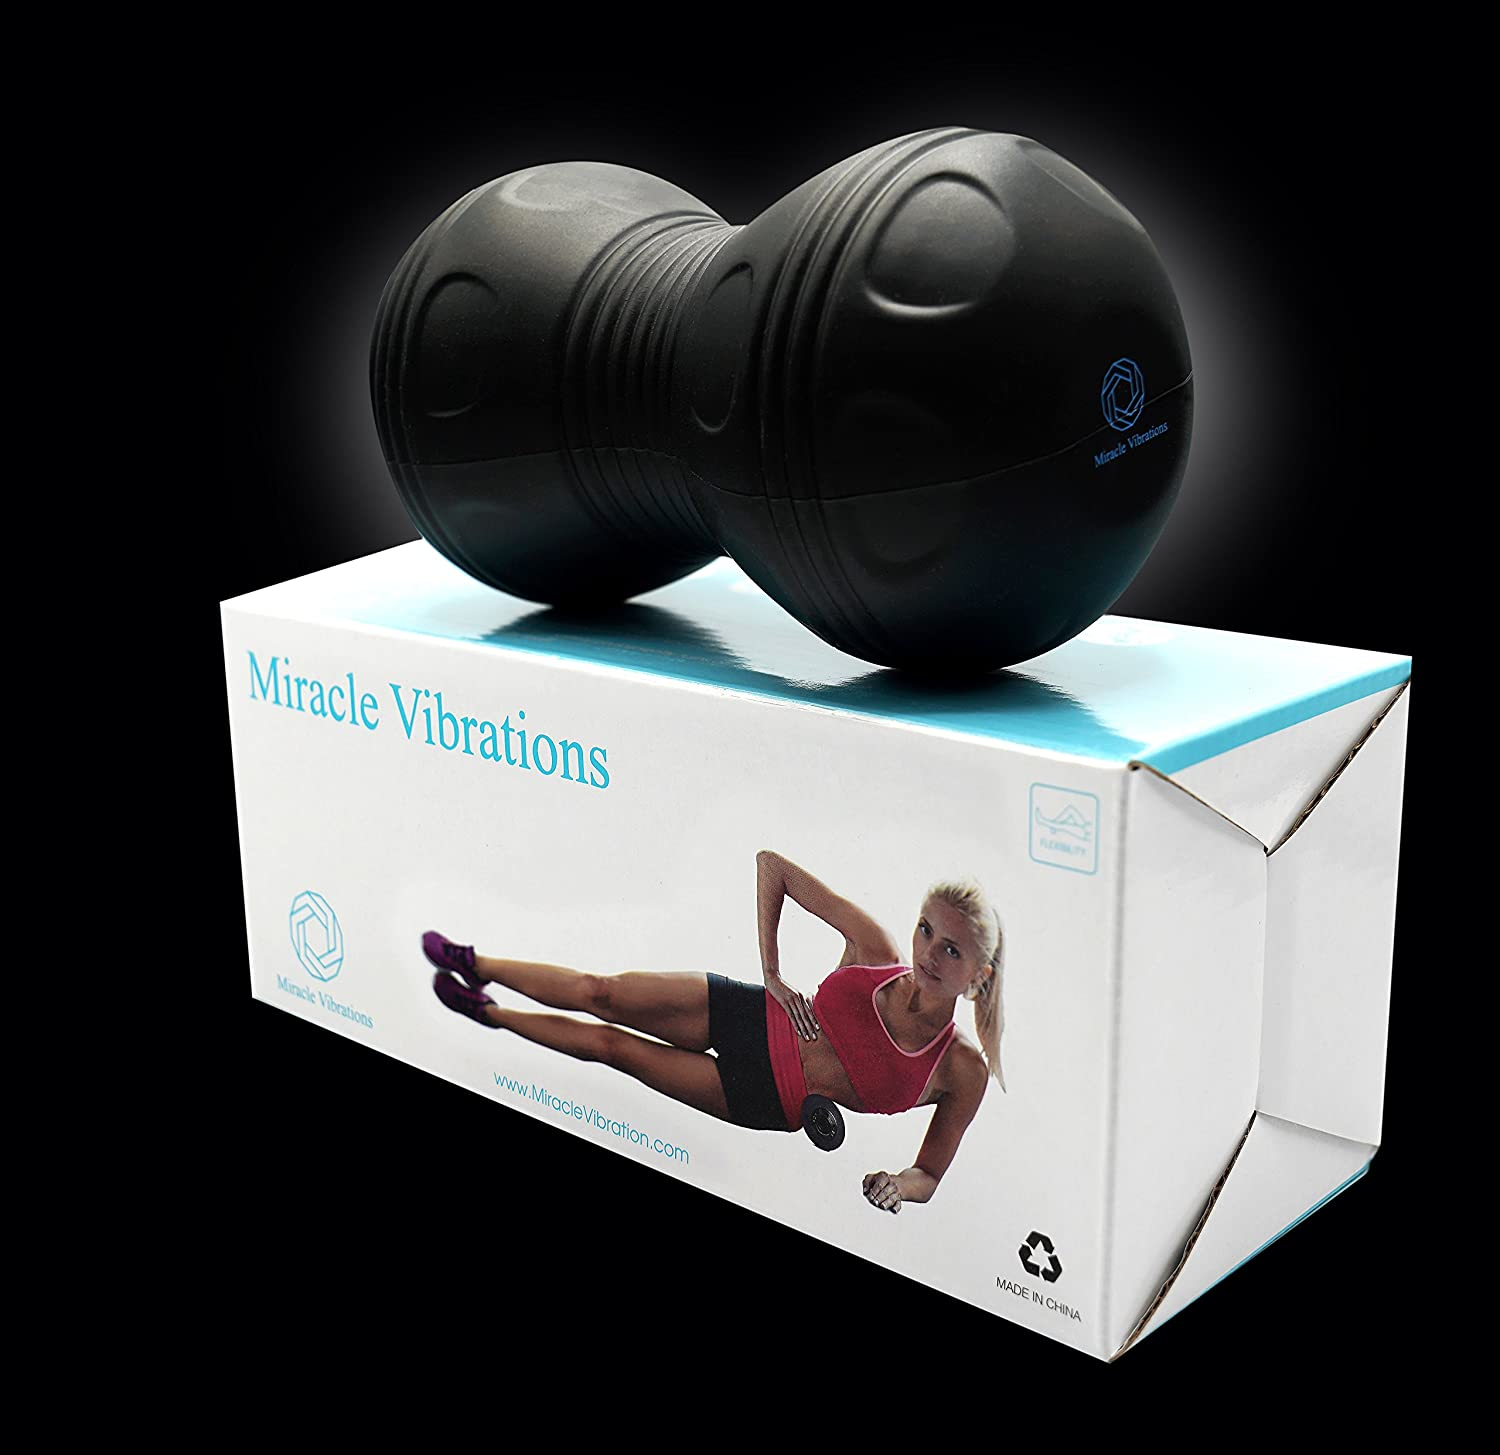 Vibrating Back Roller Massage Ball with Double Trigger Point Balls and Powerful Lithium-Ion Batteries for Deep Tissue Release by Miracle Vibration